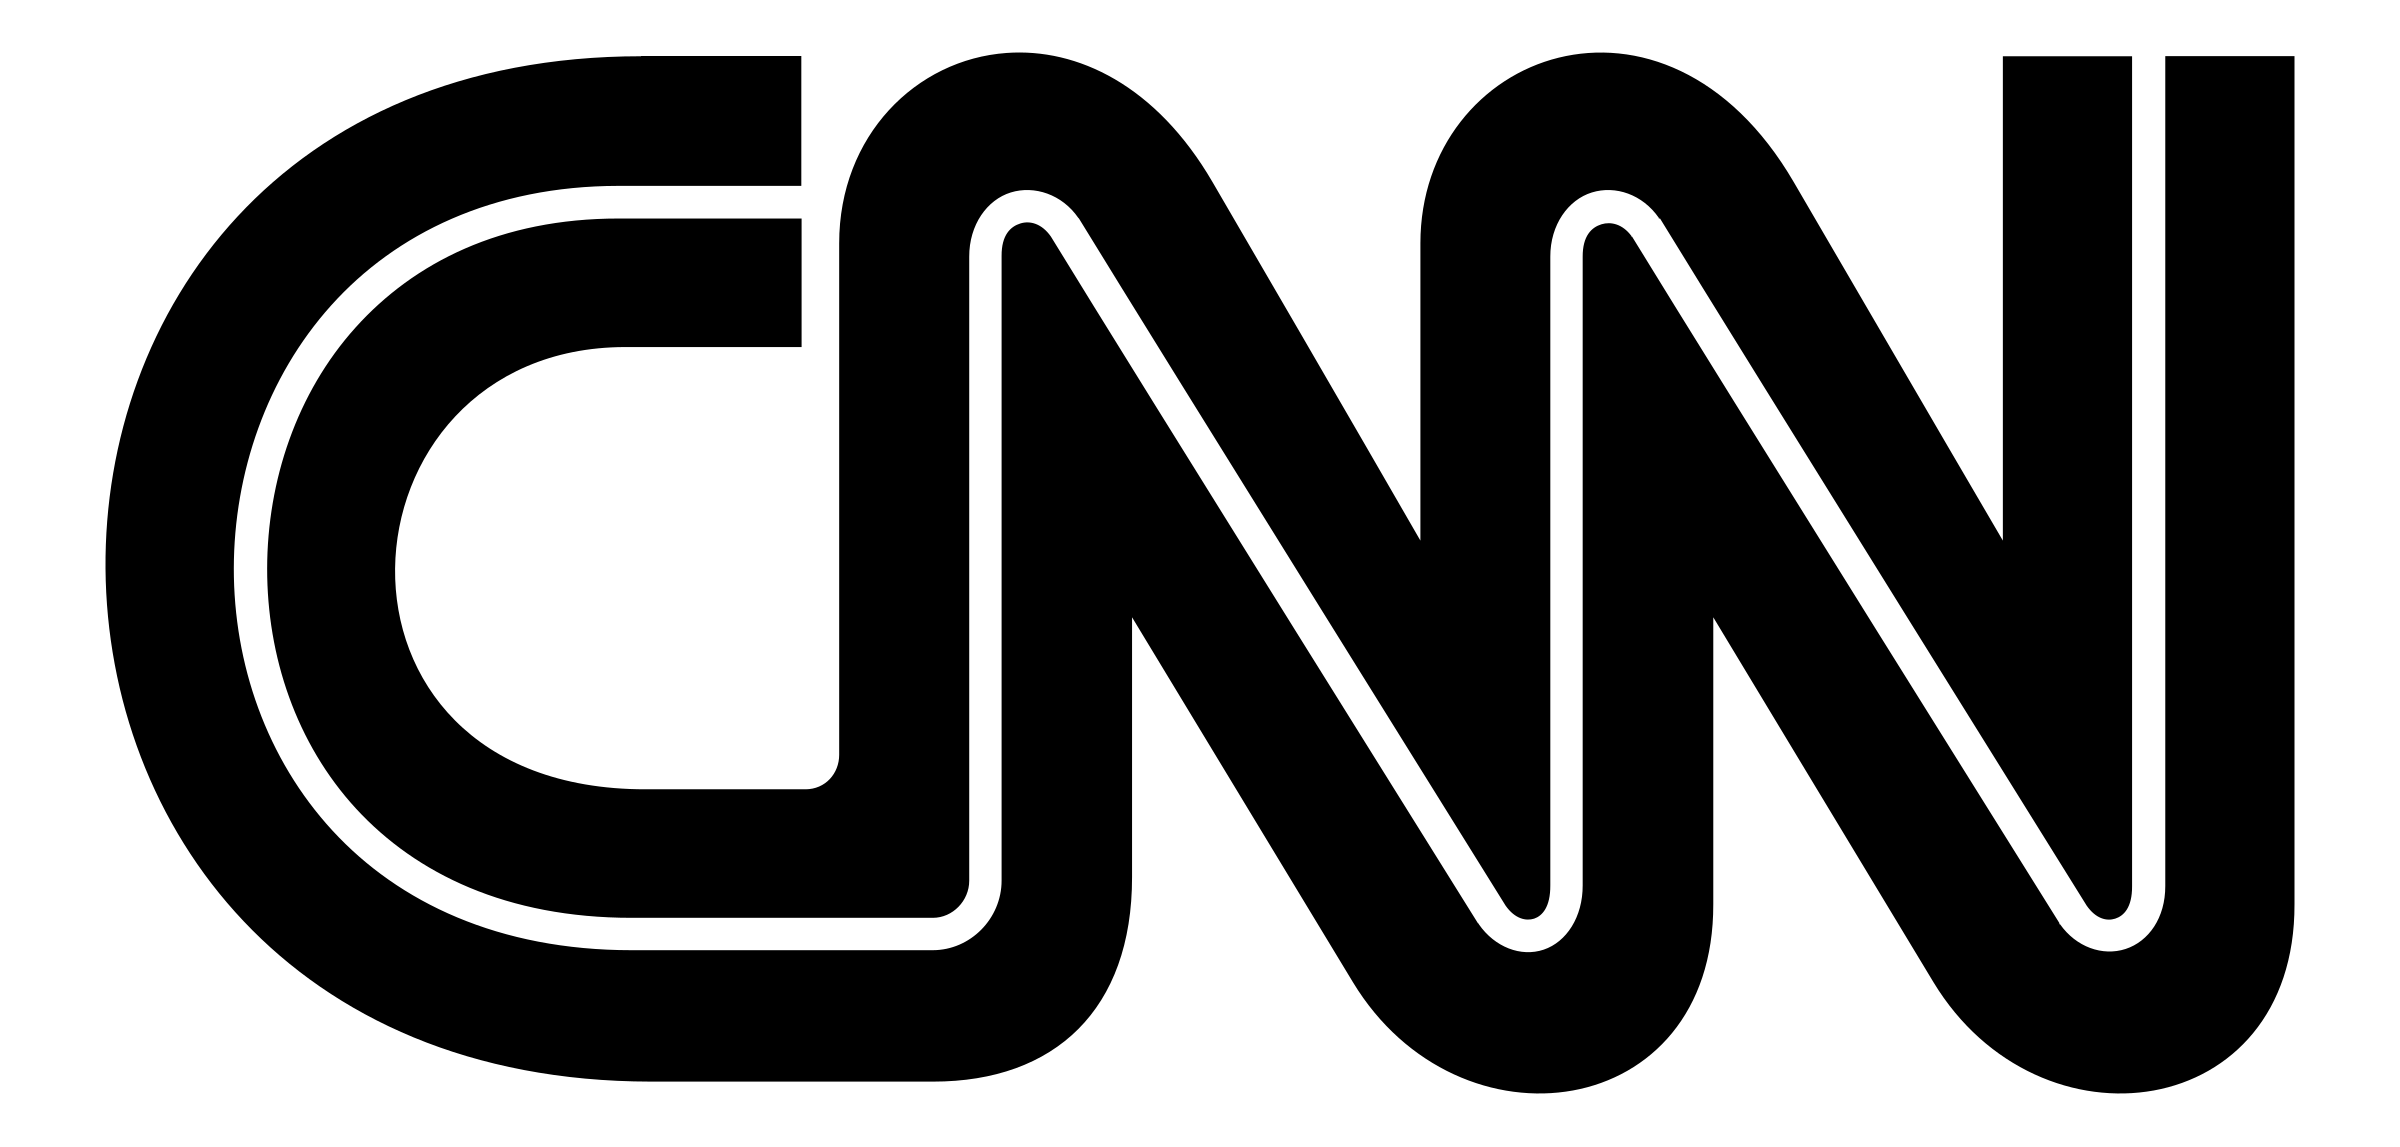 Cnn logo png. Transparent svg vector freebie